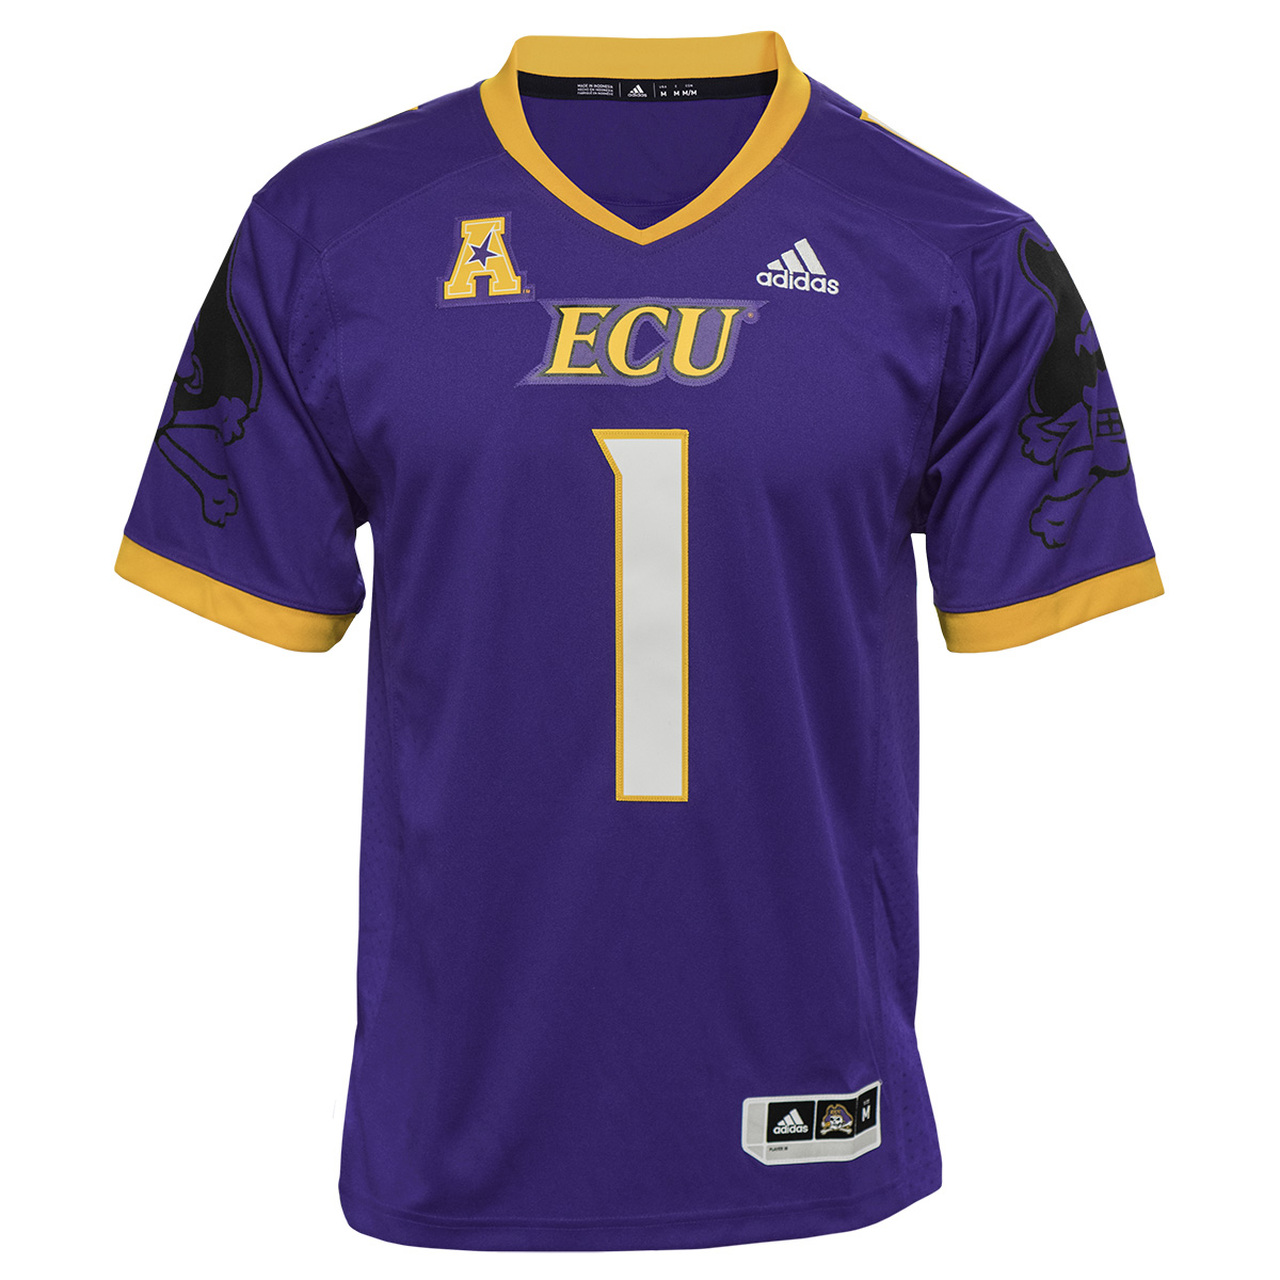 official photos 9f848 67965 2018 Authentic Purple ECU Football jersey